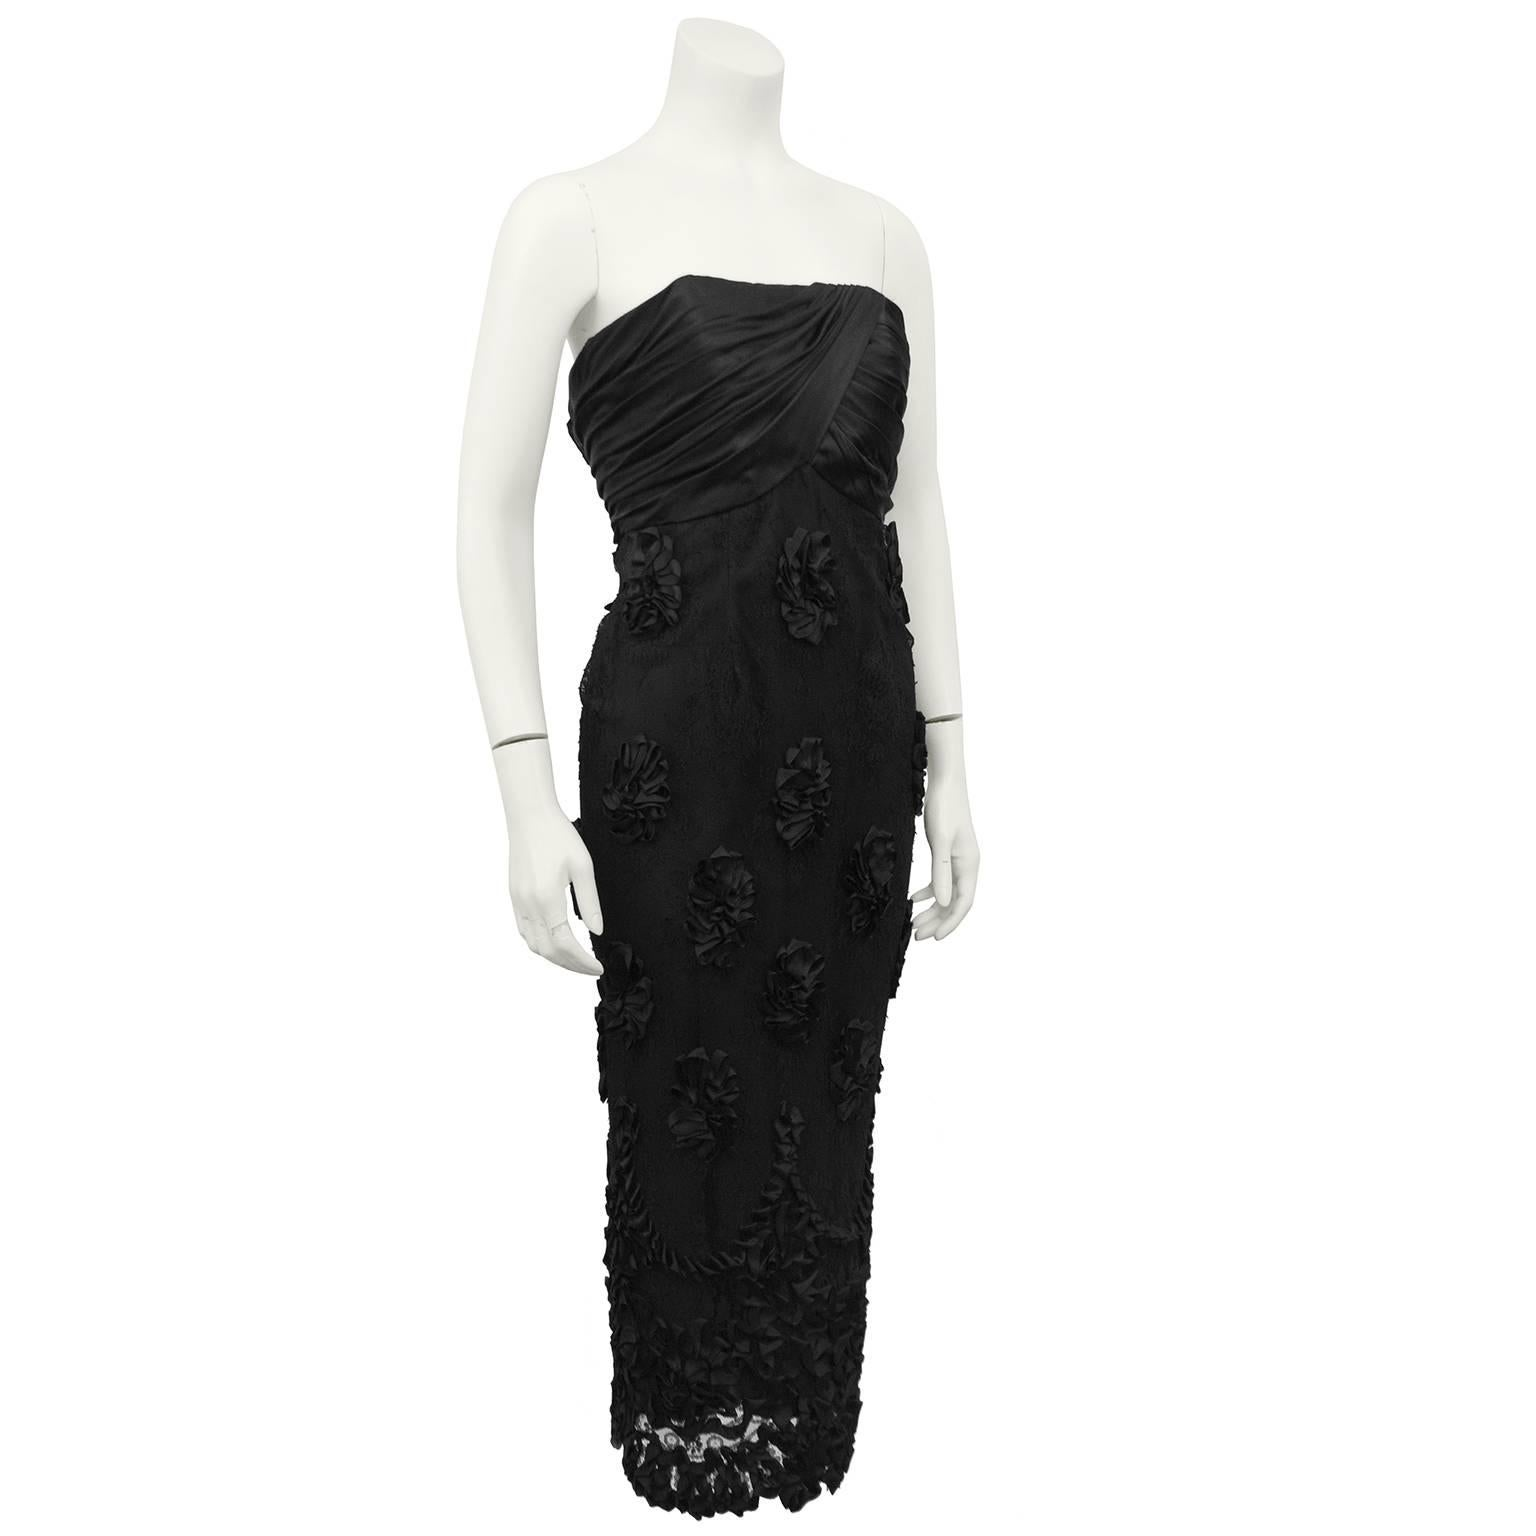 1960s Black Strapless Cocktail Dress with